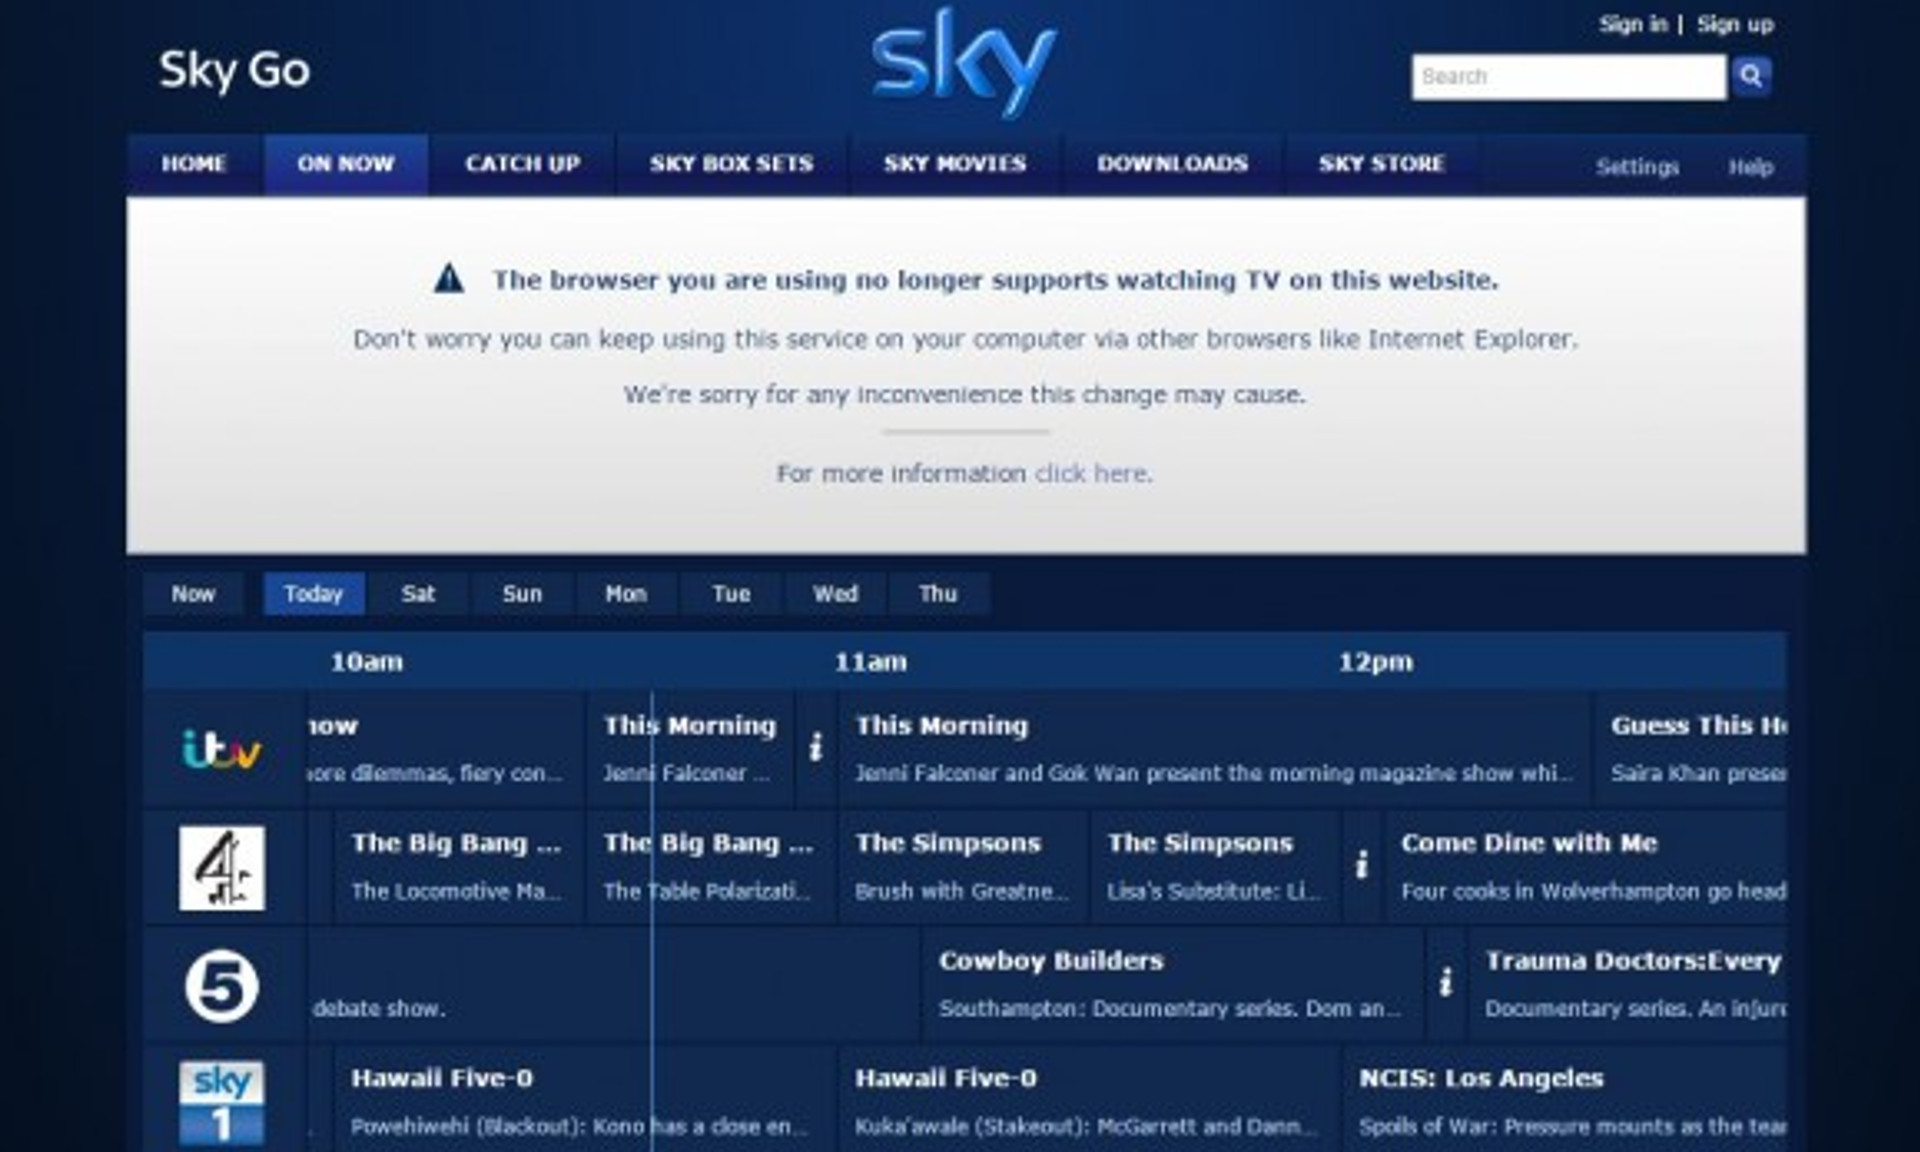 Why Sky Go is no longer working on Google Chrome, and what to do